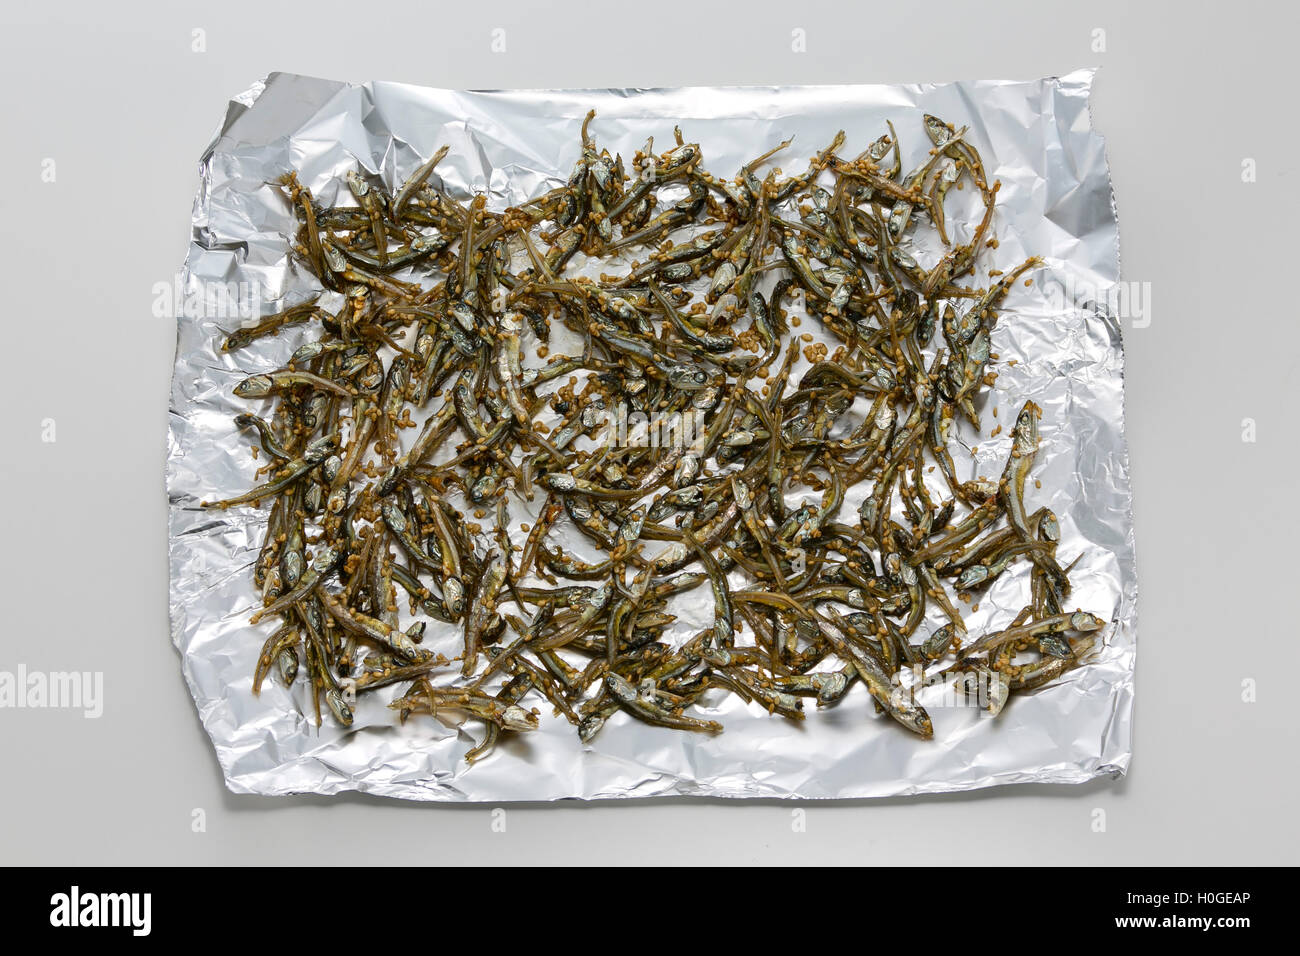 Fried dried anchovy fish on aluminum paper in asia - Stock Image